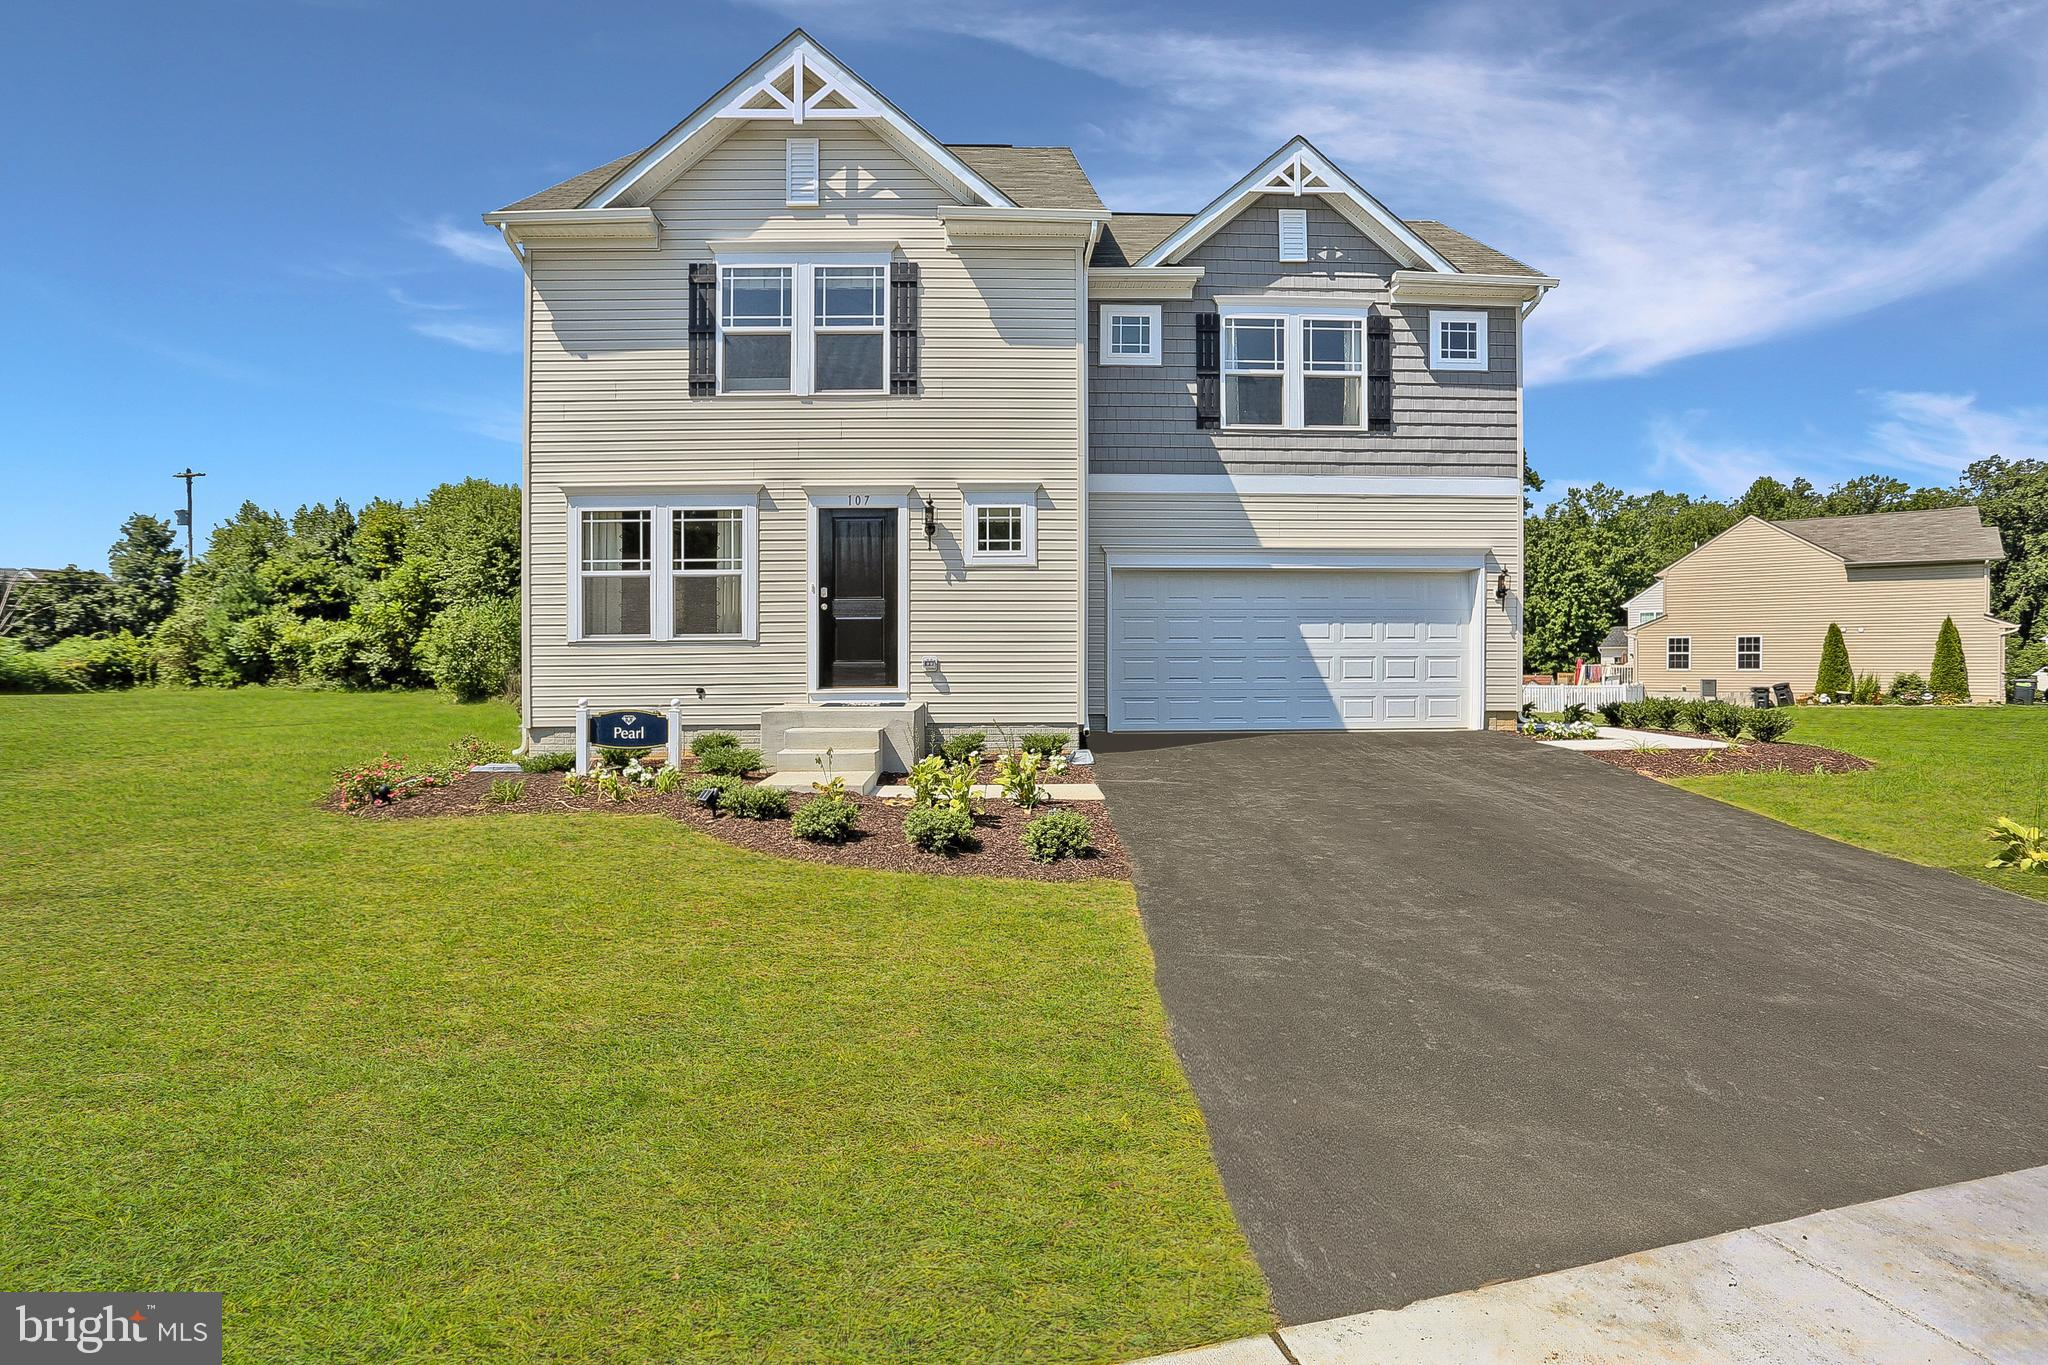 Gemcraft Homes, Inc. to be built home in Joppa.  Featuring 4 bedrooms, 2 1/2 baths, 2 car garage, la